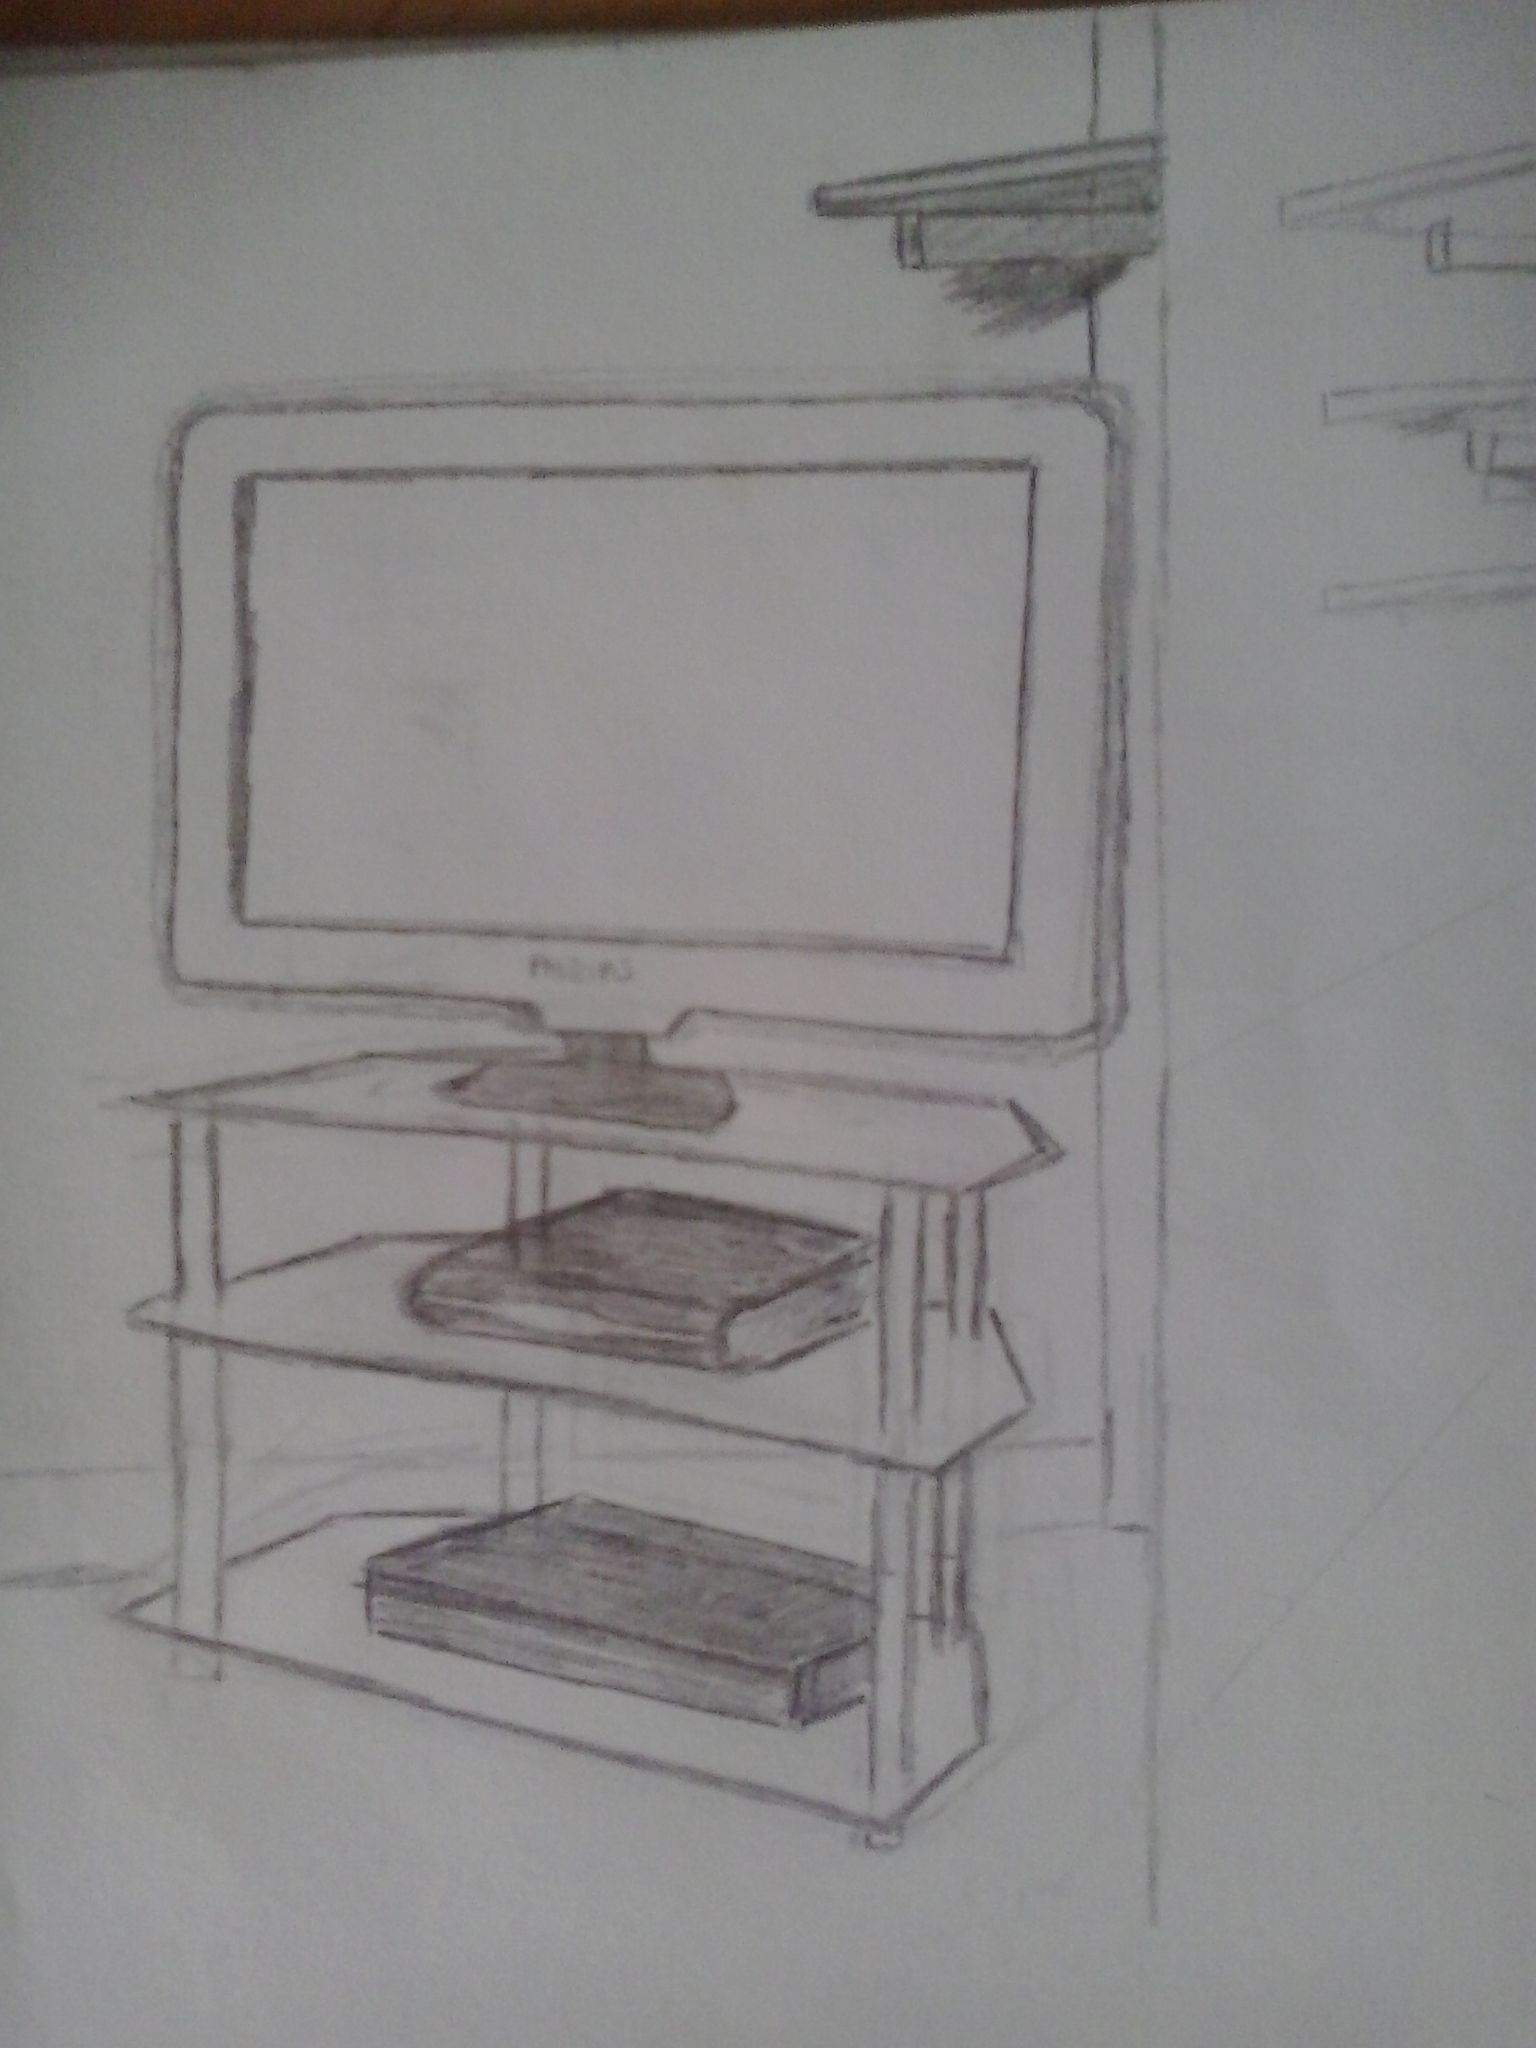 Room Drawing Pencil: Television Unit; #drawing With Pencil